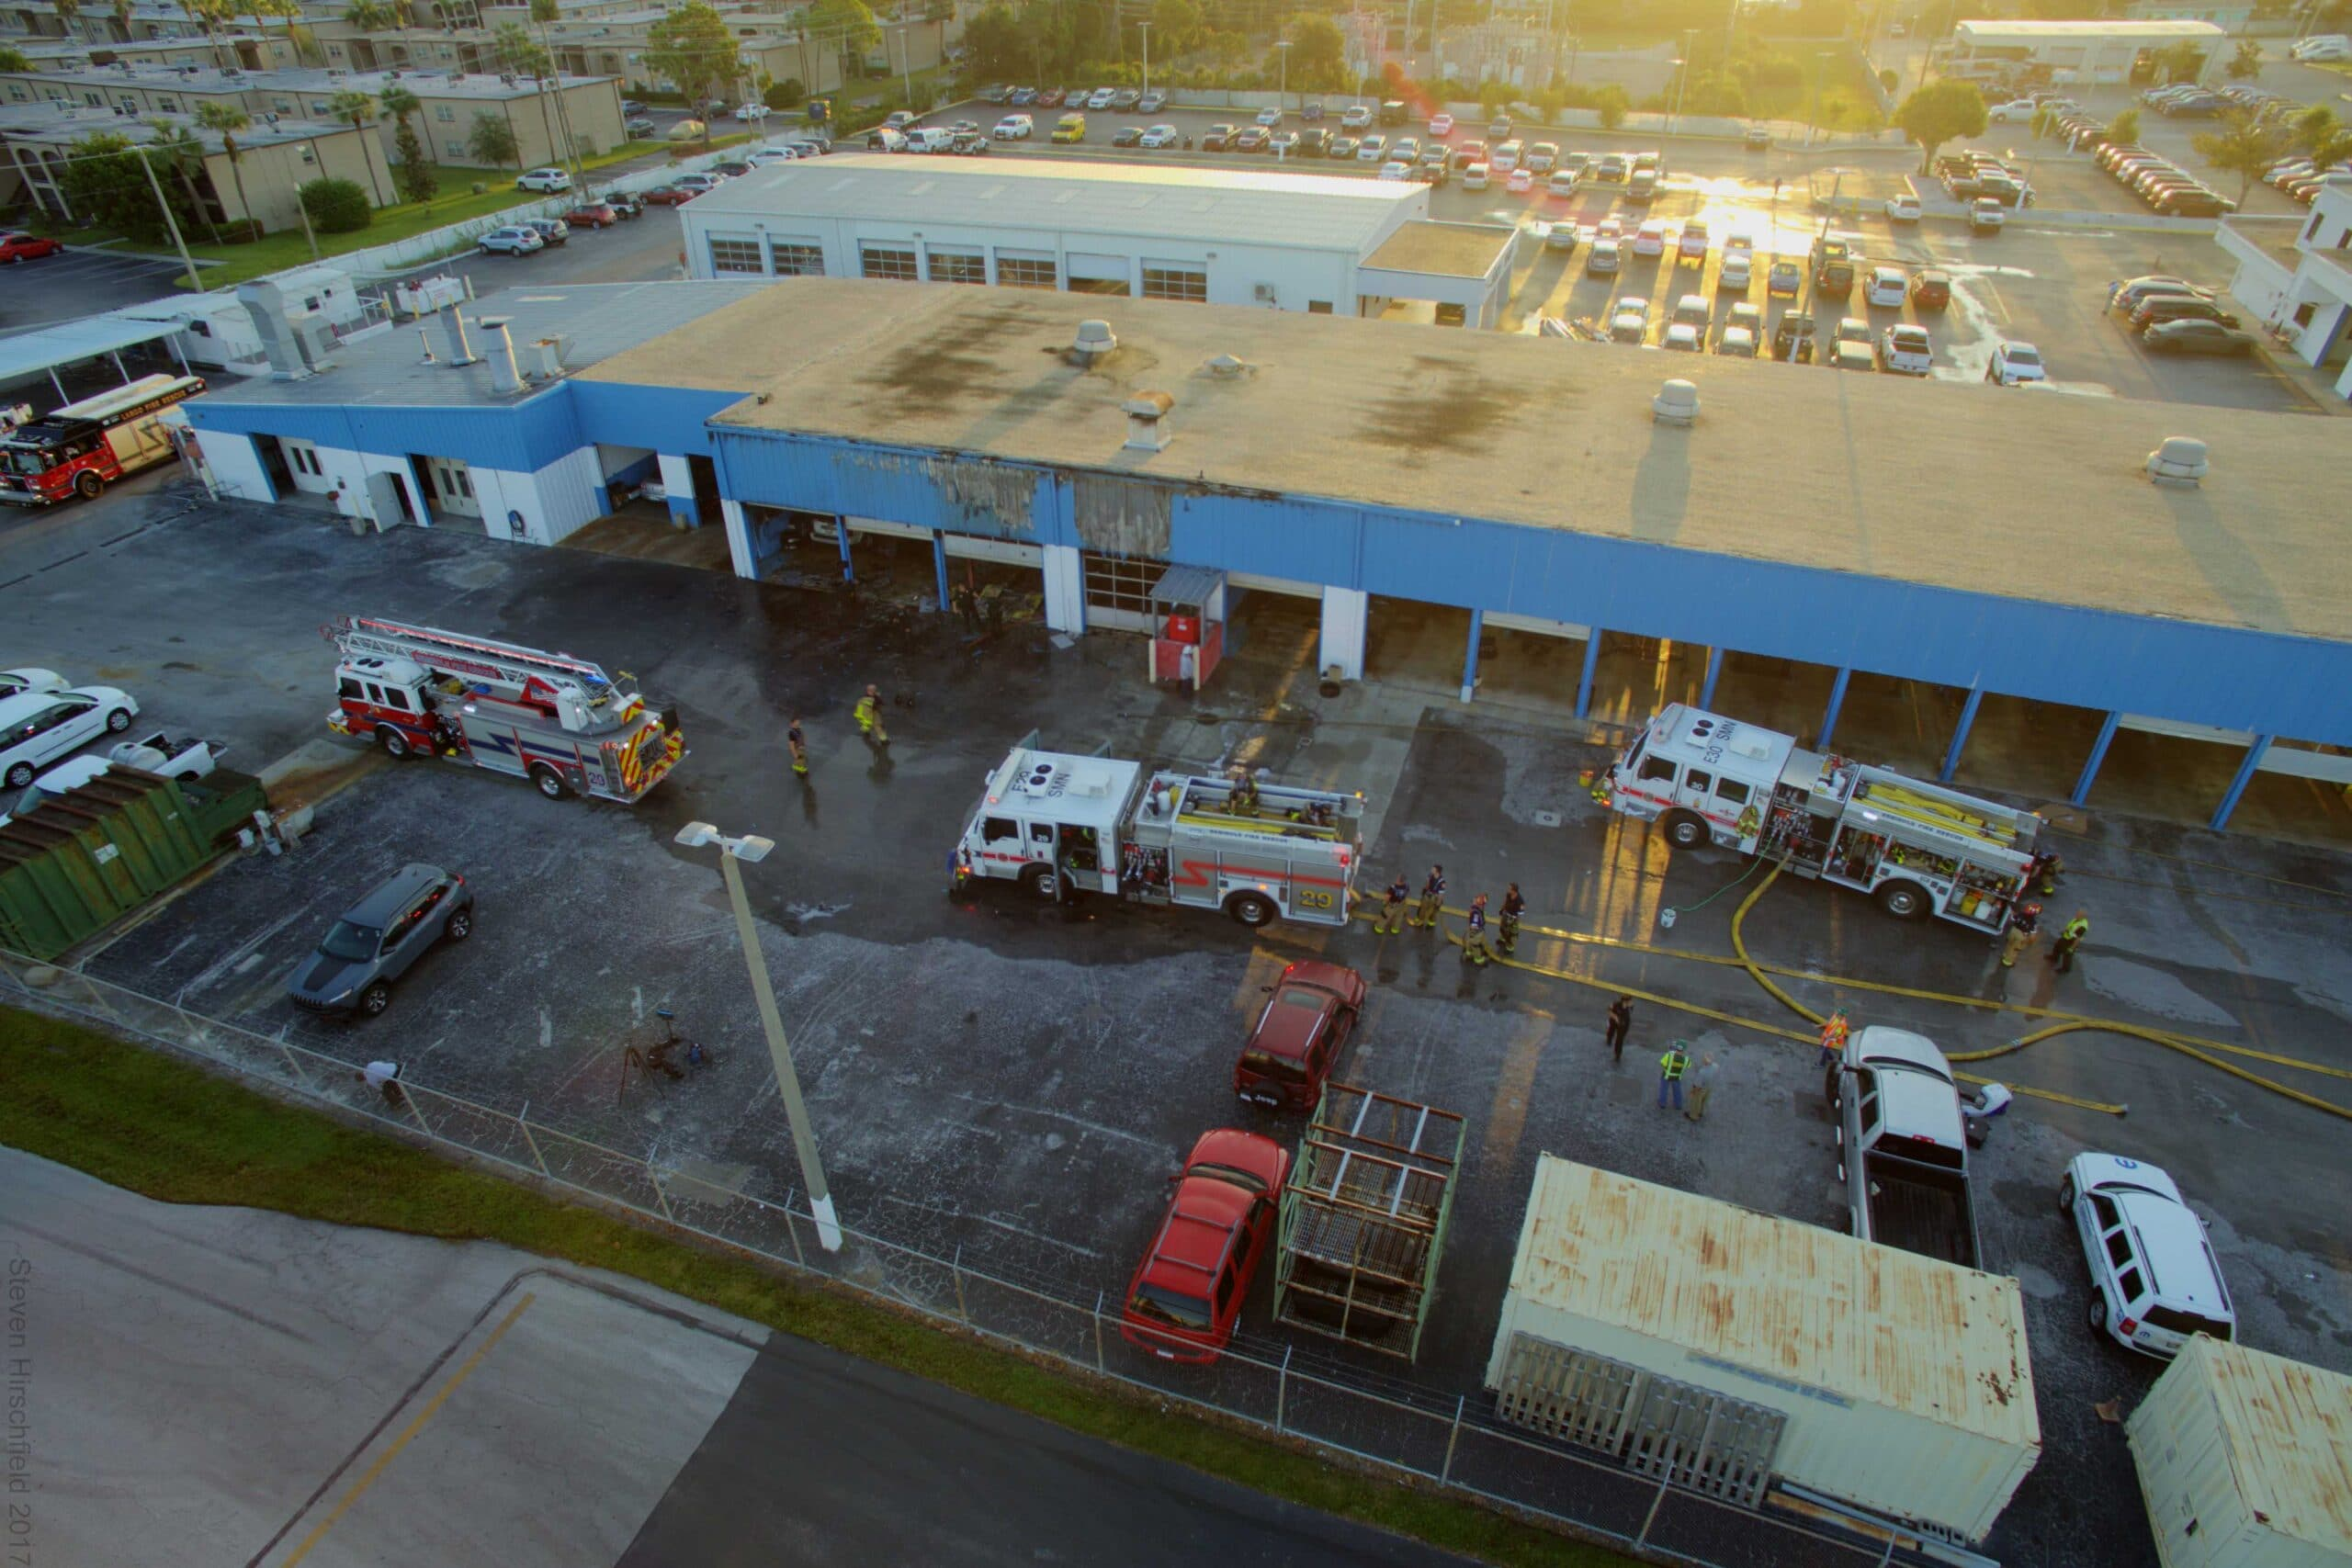 Firefighters Battle 2 Alarm Structure Fire at the Suncoast Chrysler